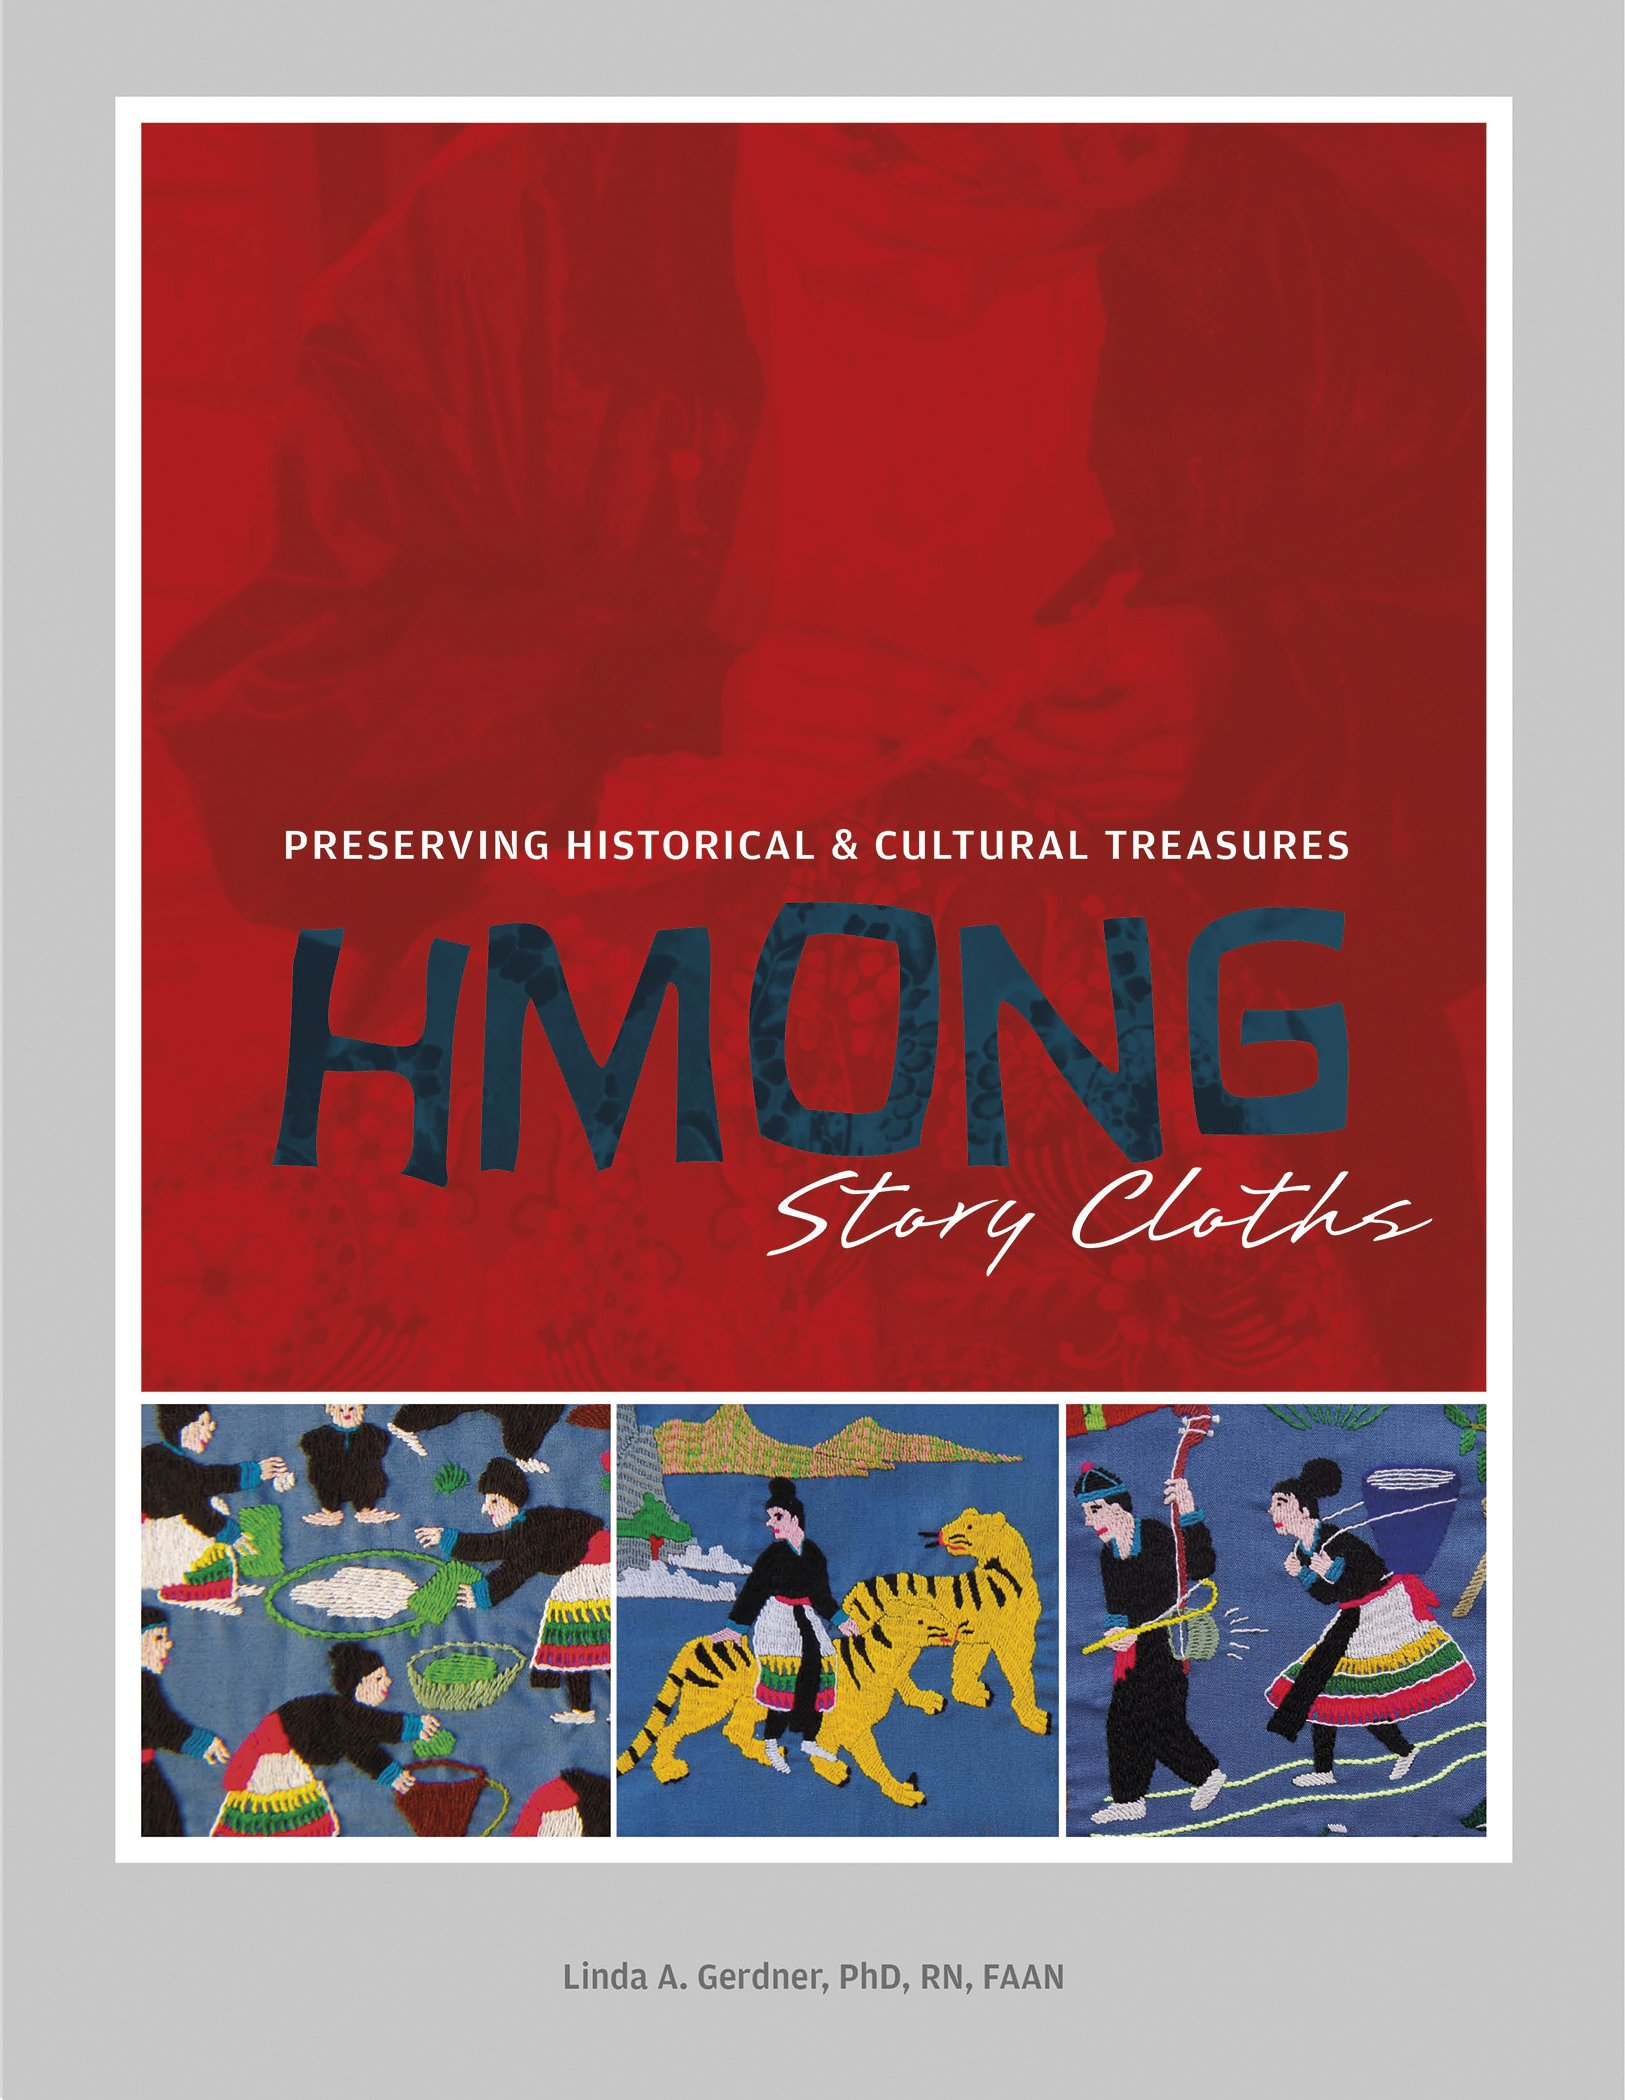 How To Make A Book Cover Cloth ~ Amazon hmong story cloths preserving historical cultural